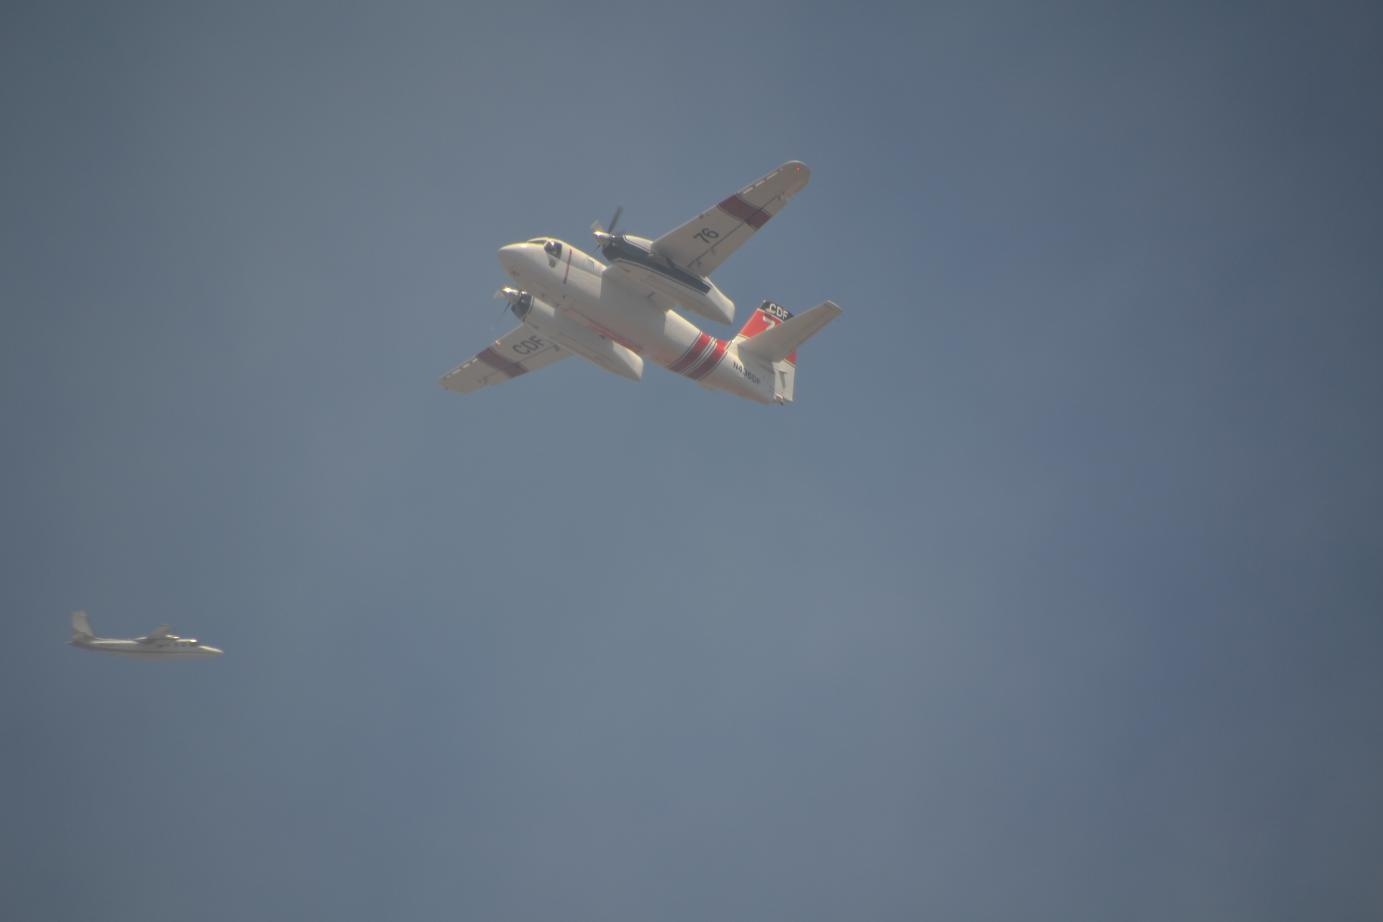 Planes over Lakes Fire - photo by Gina Clugston